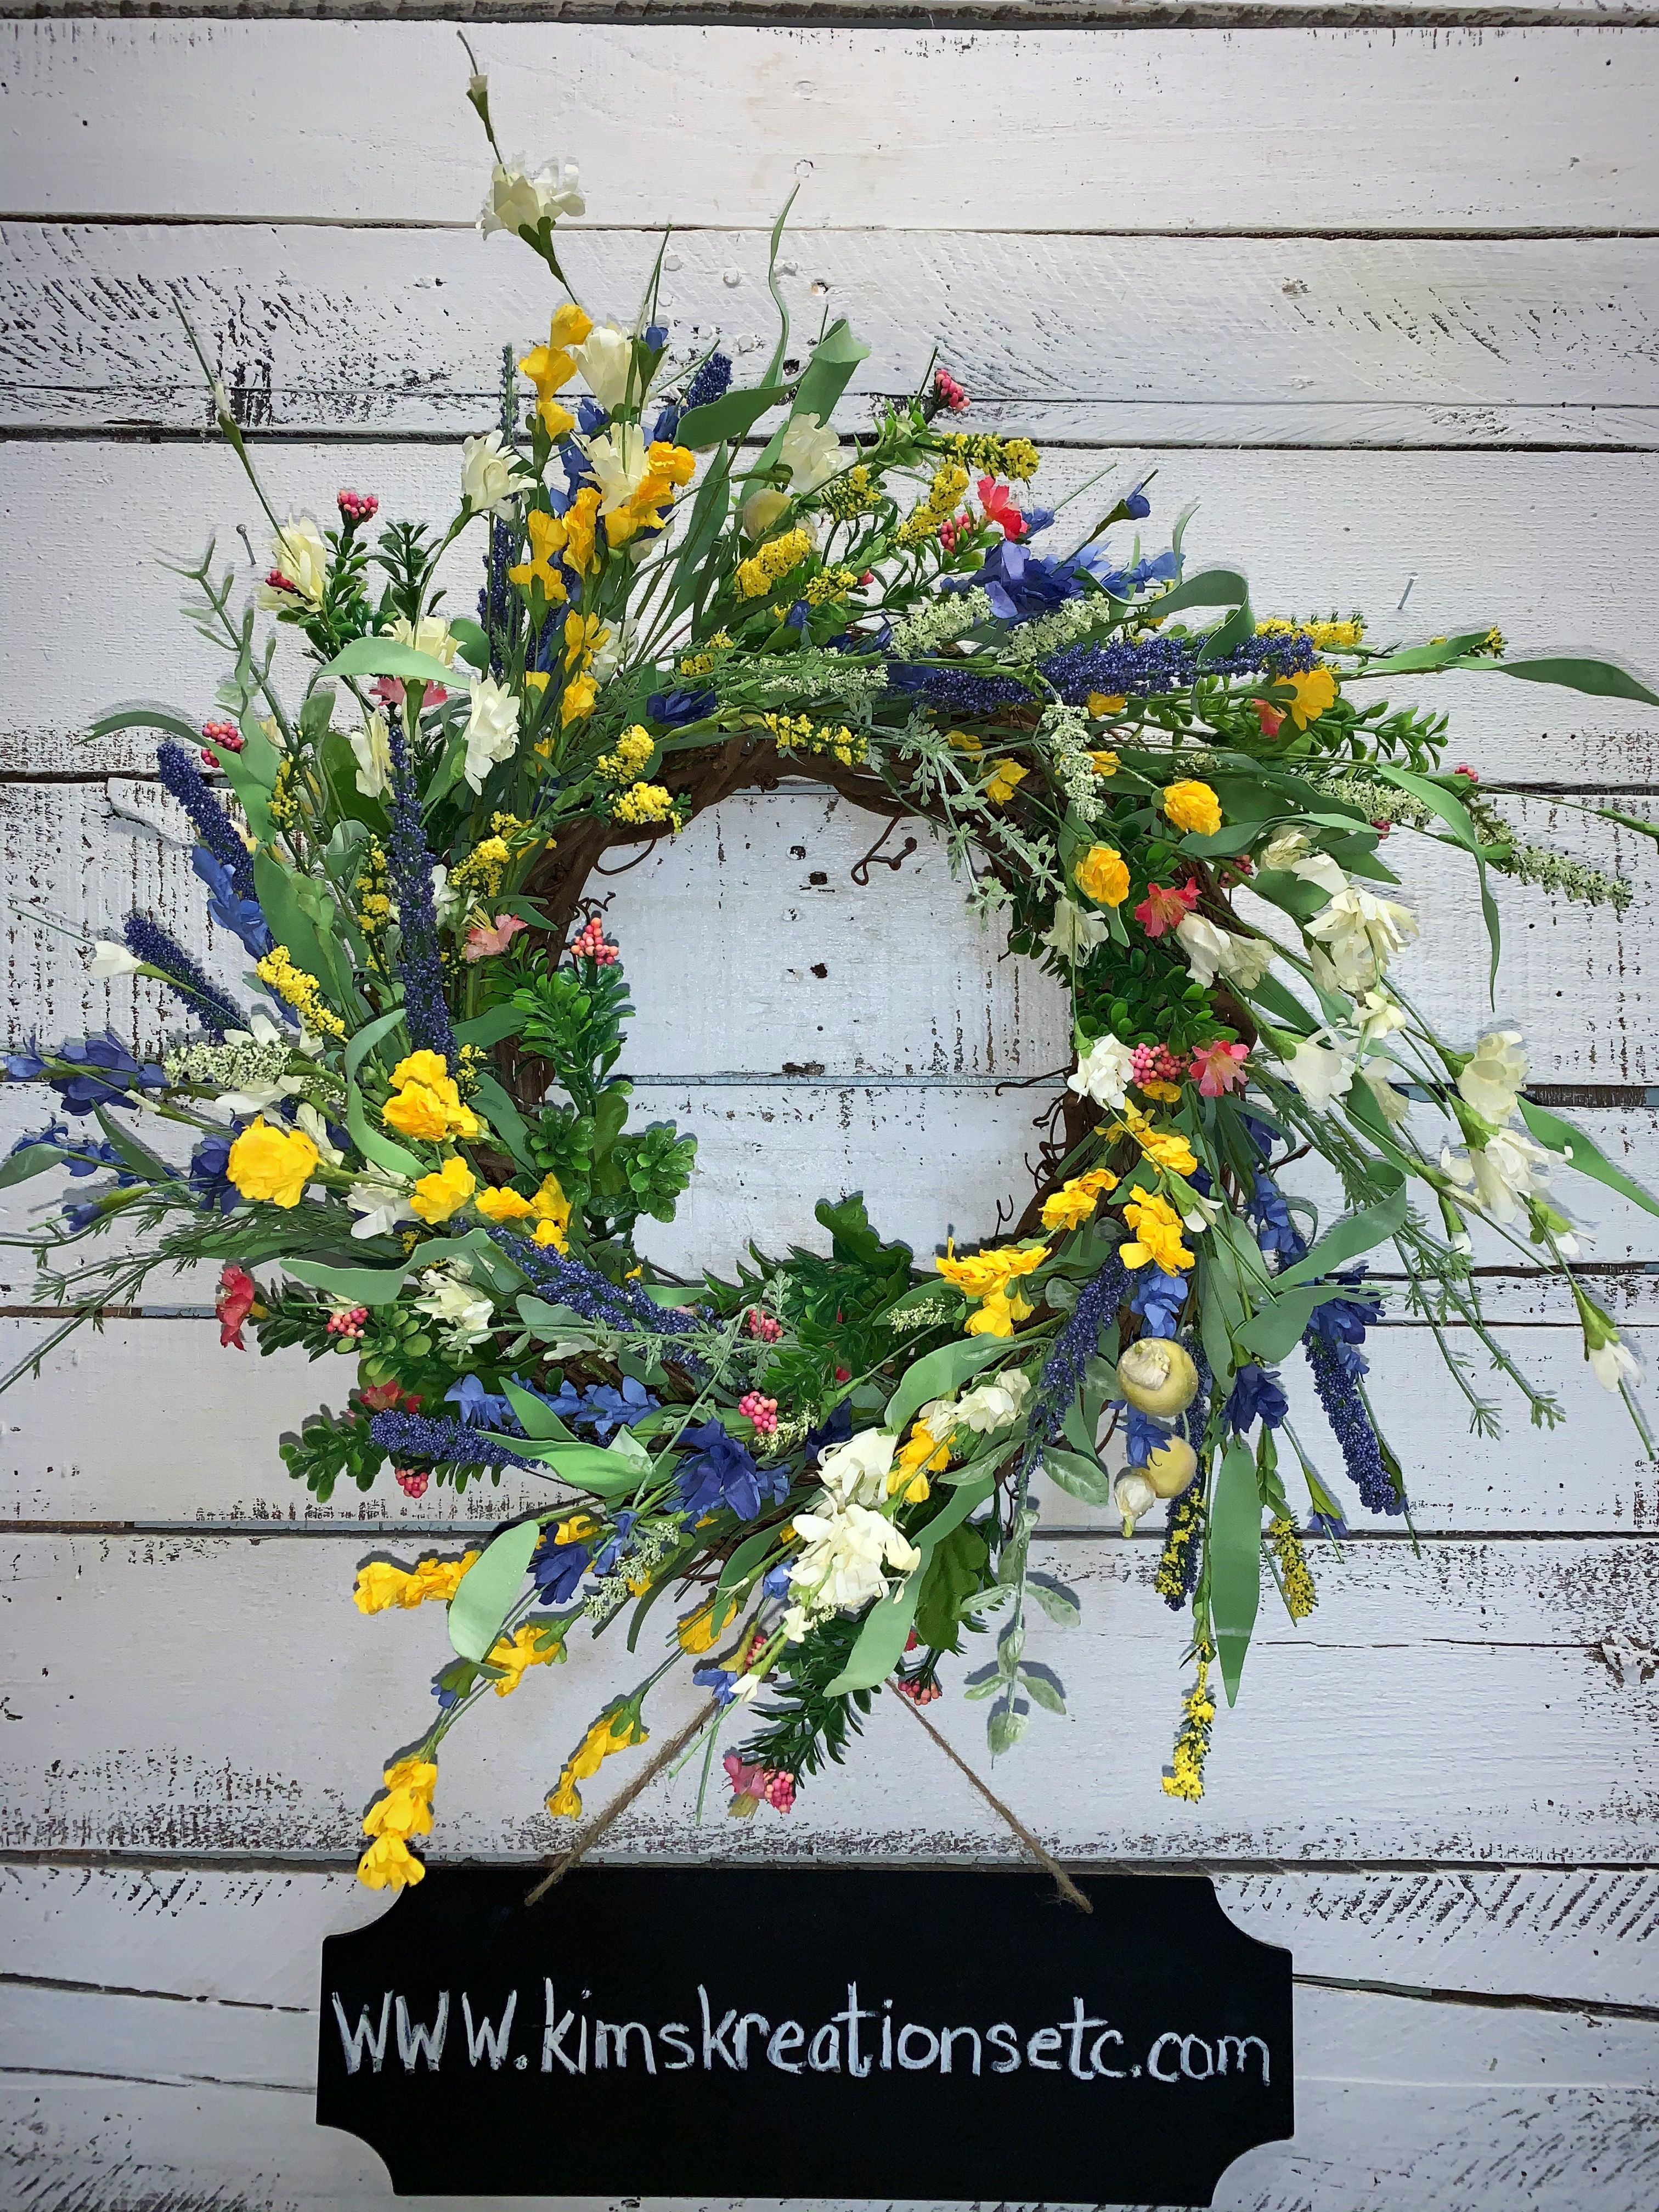 Photo of Spring Wreath, Summer Wreath, Wildflowers, Purple, Yellow, Pink, White, Wildflowers Wreath for Spring, Front Door Wreath, Home Decor, Wreaths for Sale, Decorative Wreath, Handmade Wreaths